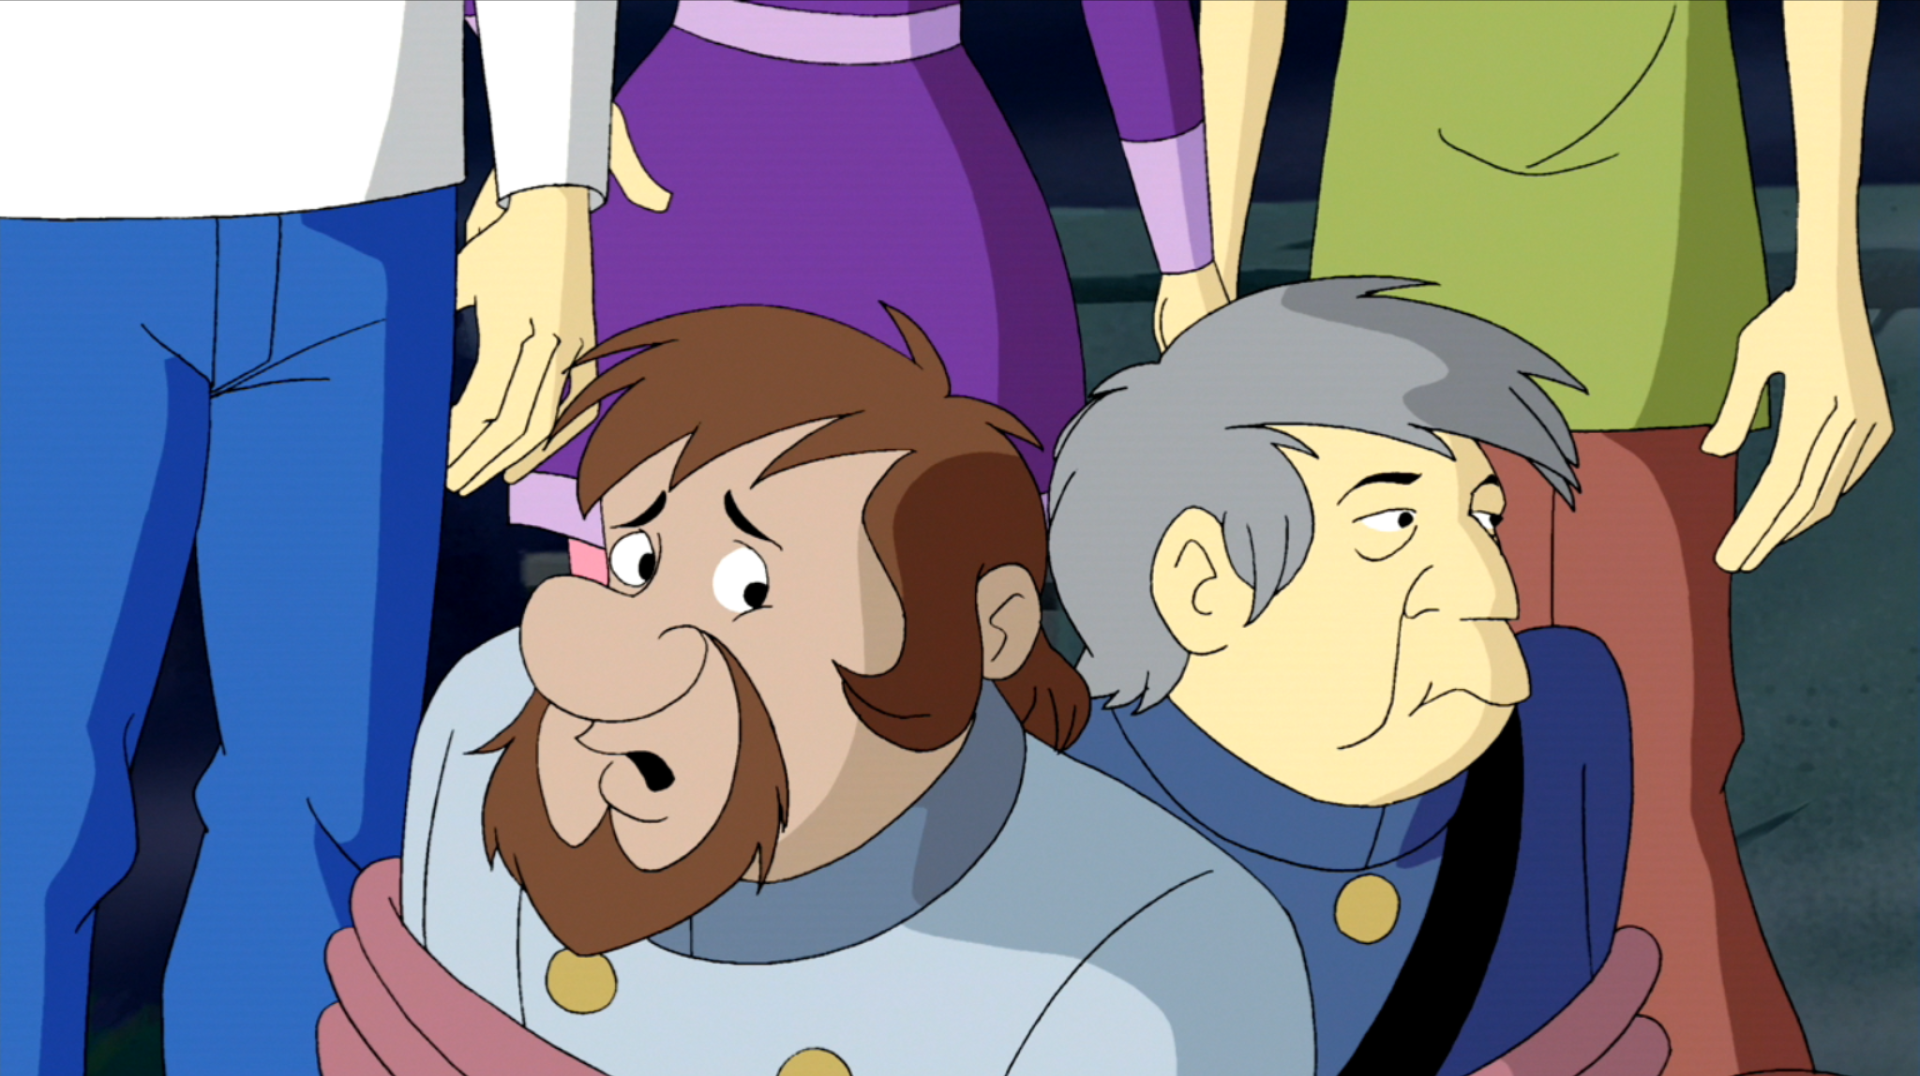 http://vignette4.wikia.nocookie.net/scoobydoo/images/6/6c/Crawdad_Mike_and_driver_unmasked.png/revision/